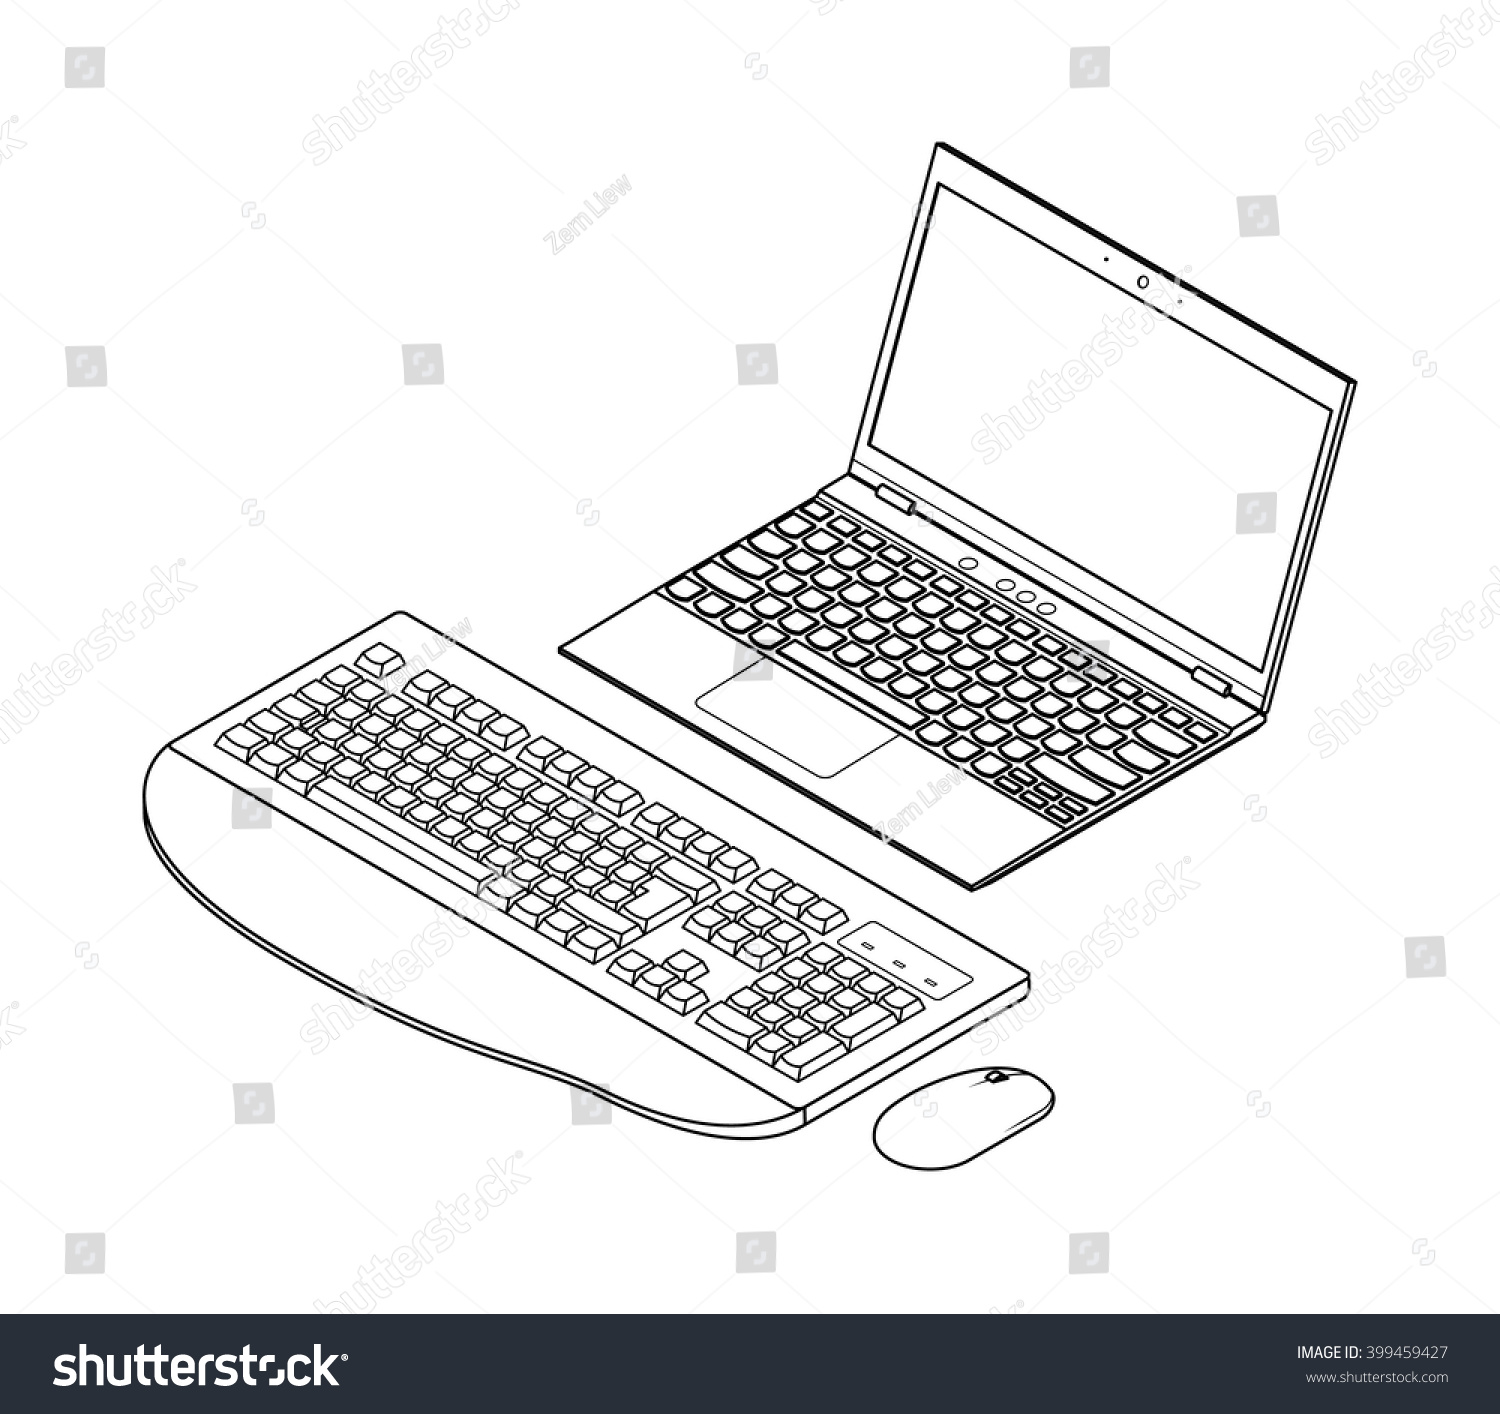 Line Drawing Keyboard : Lineart detailed isometric drawing laptop computer stock